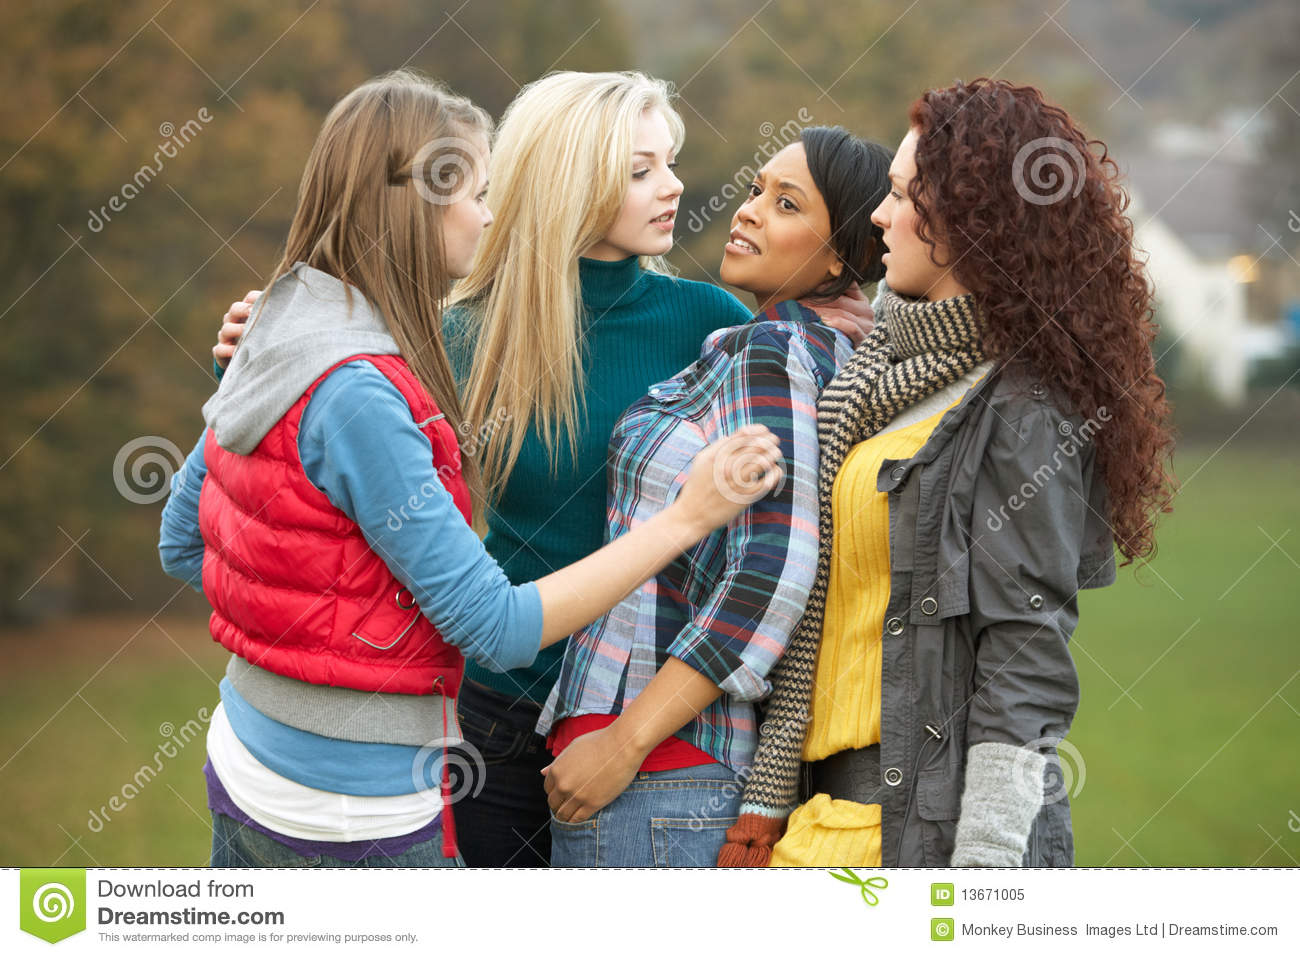 female bullying Women bullying women is not just a woman-versus-woman issue it involves the men in power too because women bullies need to play them to succeed.